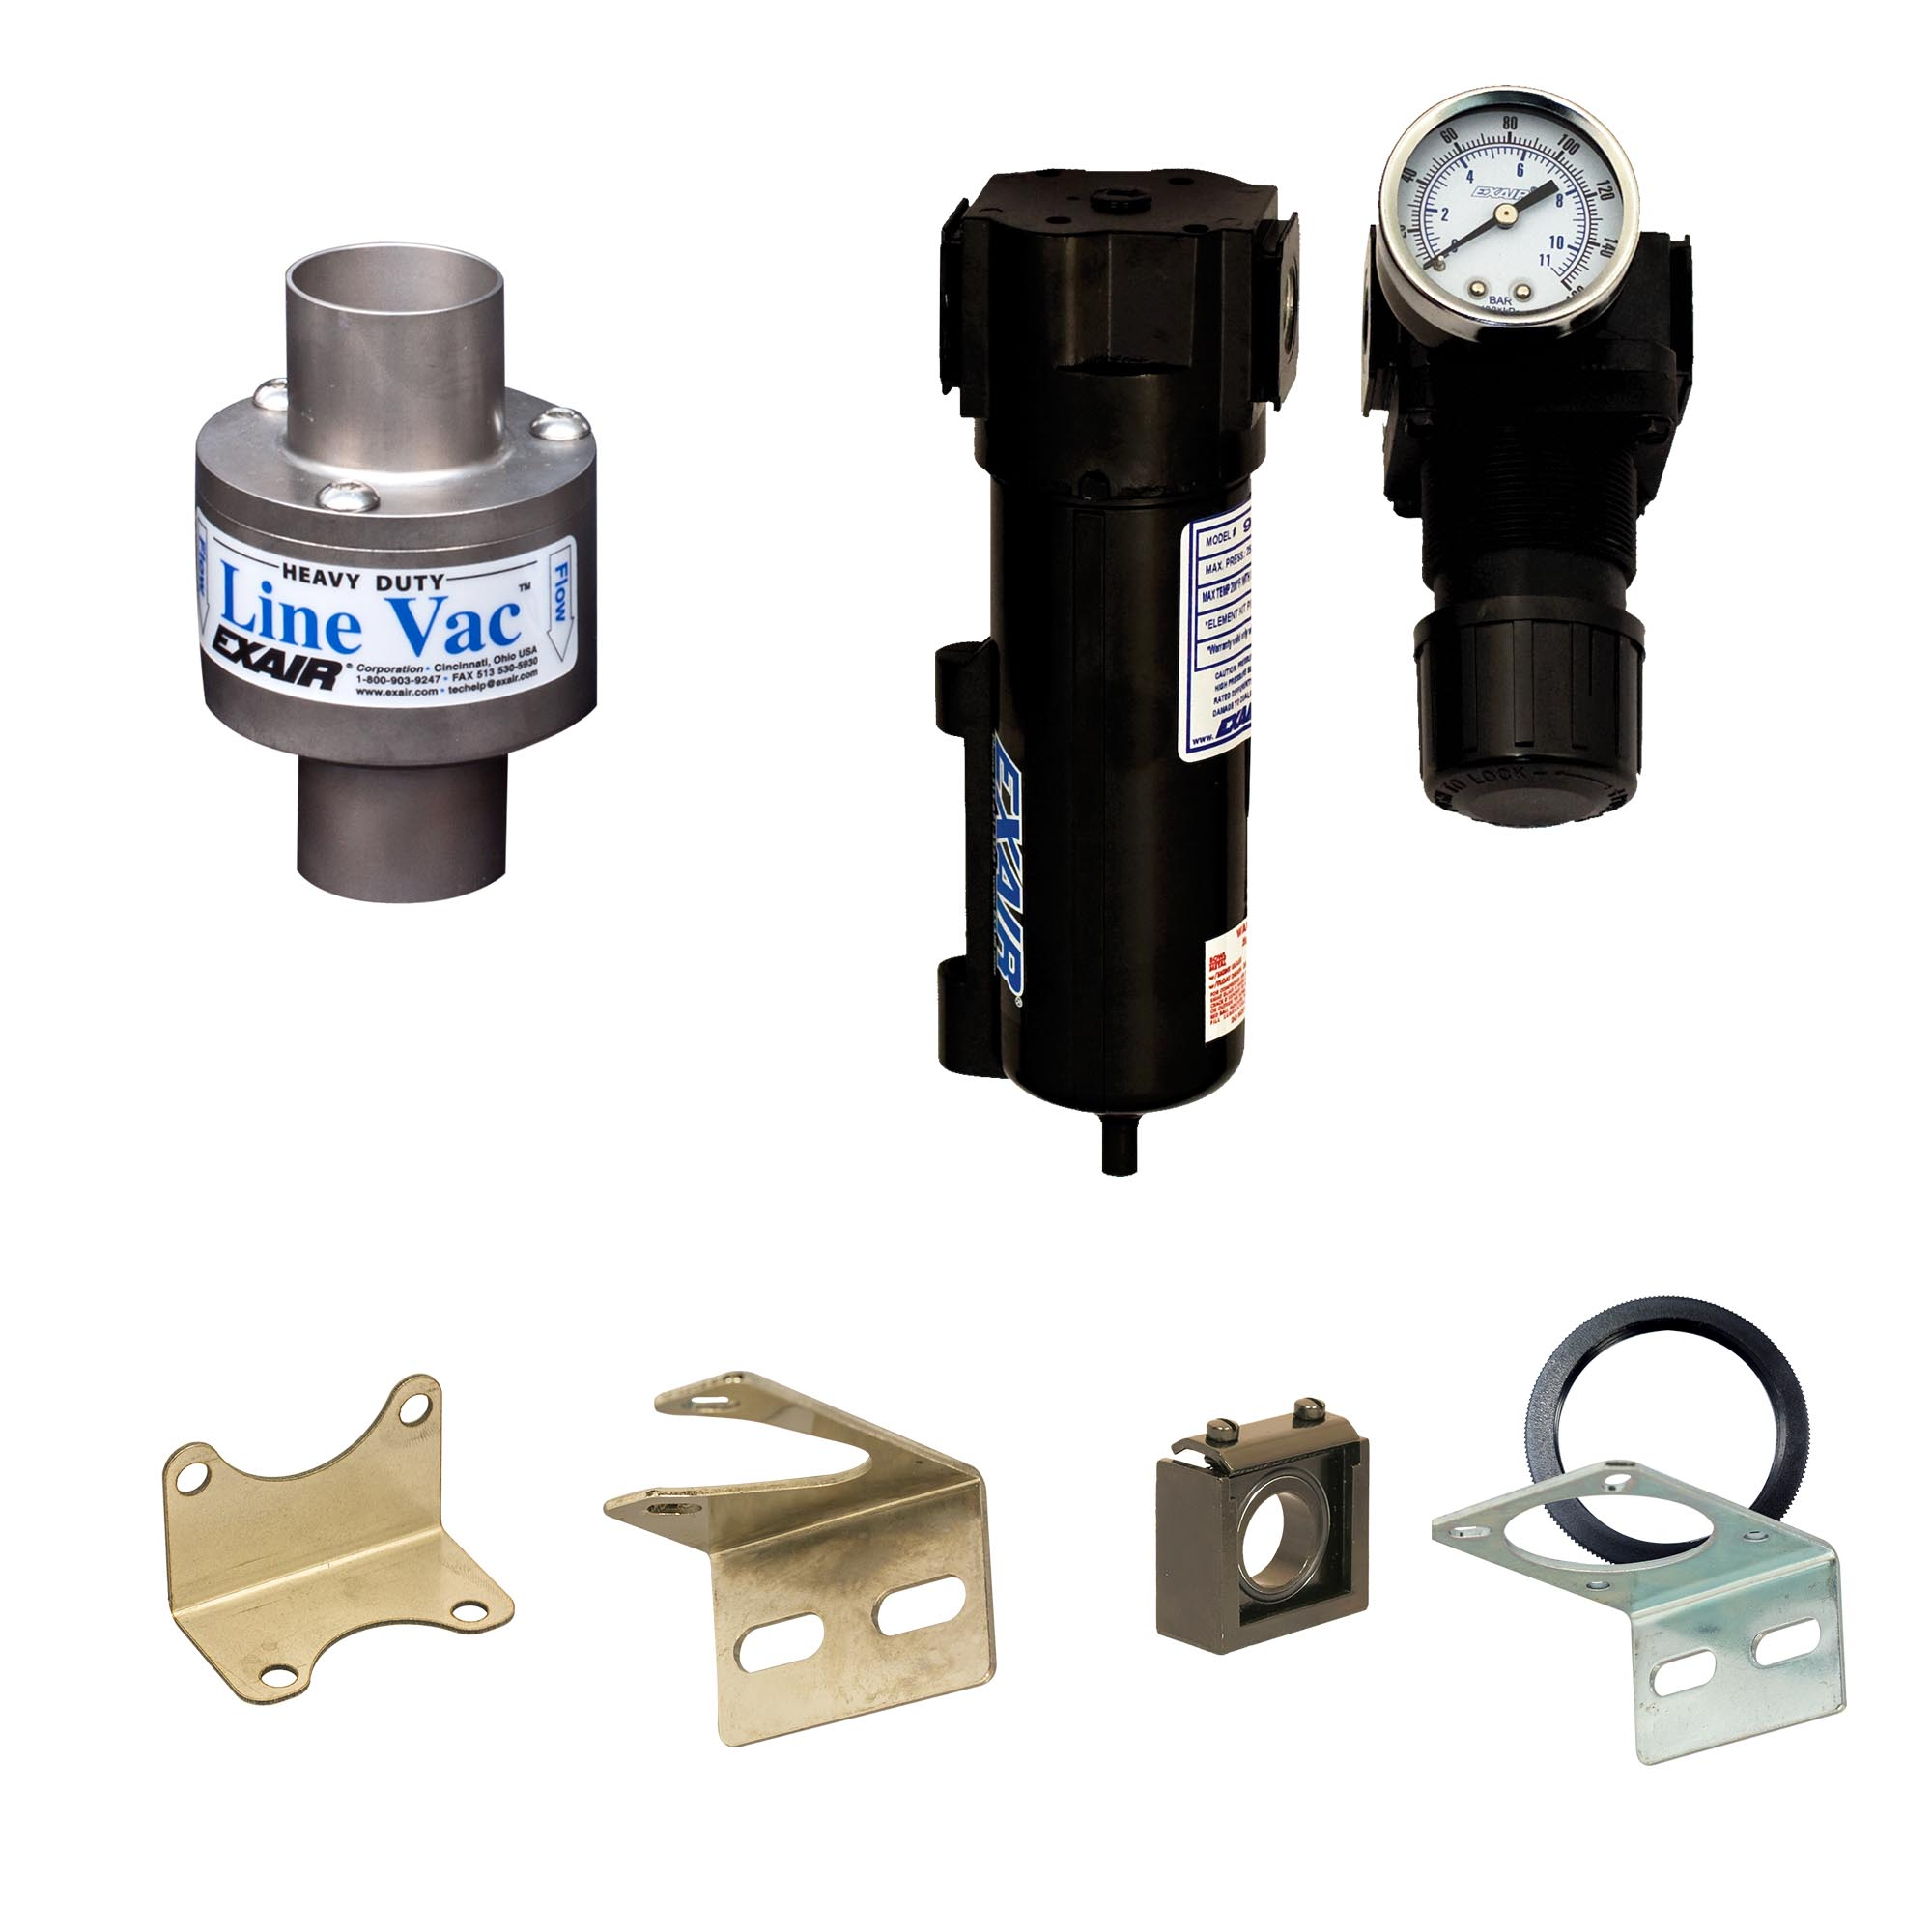 Heavy Duty Line Vac Kits include a Heavy Duty Line Vac, mounting bracket, filter separator and pressure regulator (with coupler).